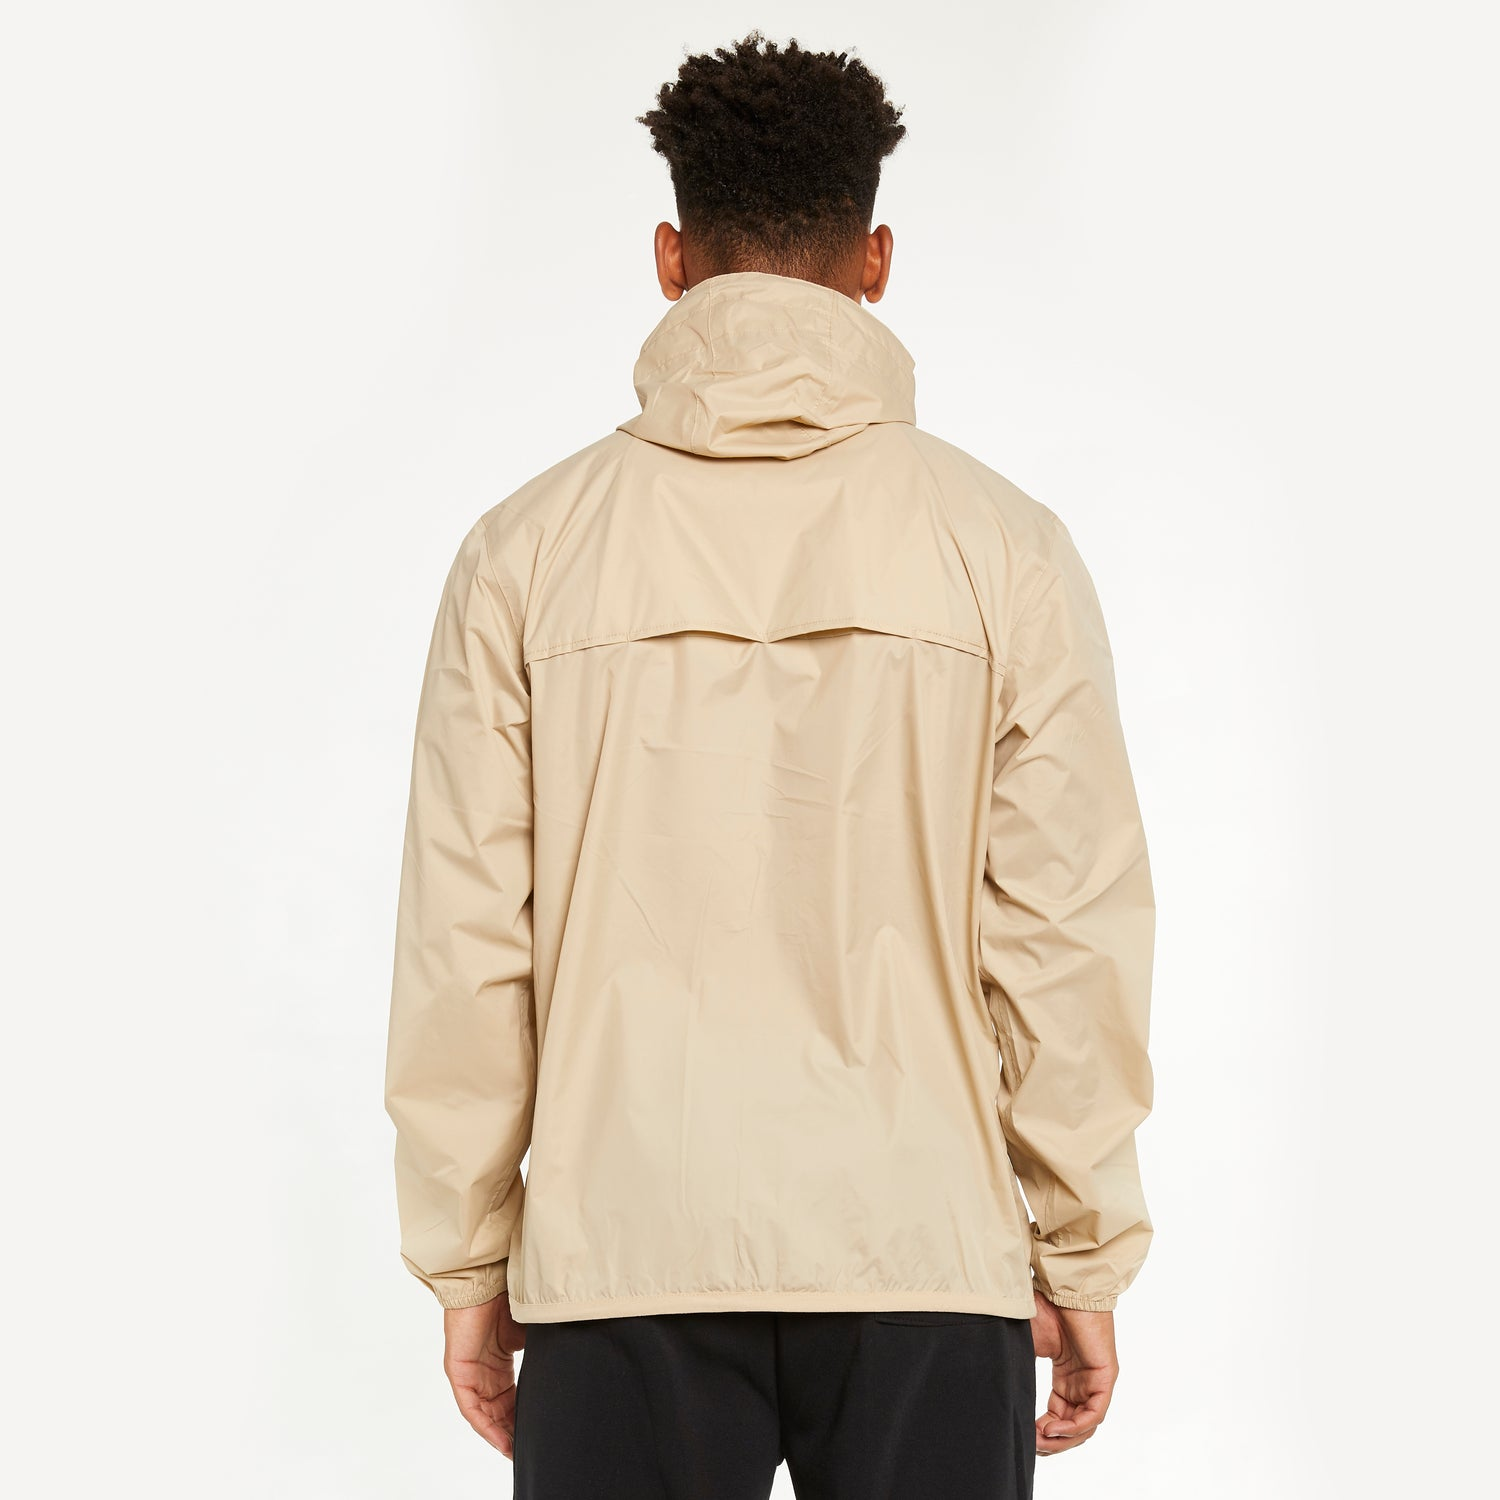 Men's Le Vrai 3.0 Claude Jacket Beige Sabbia